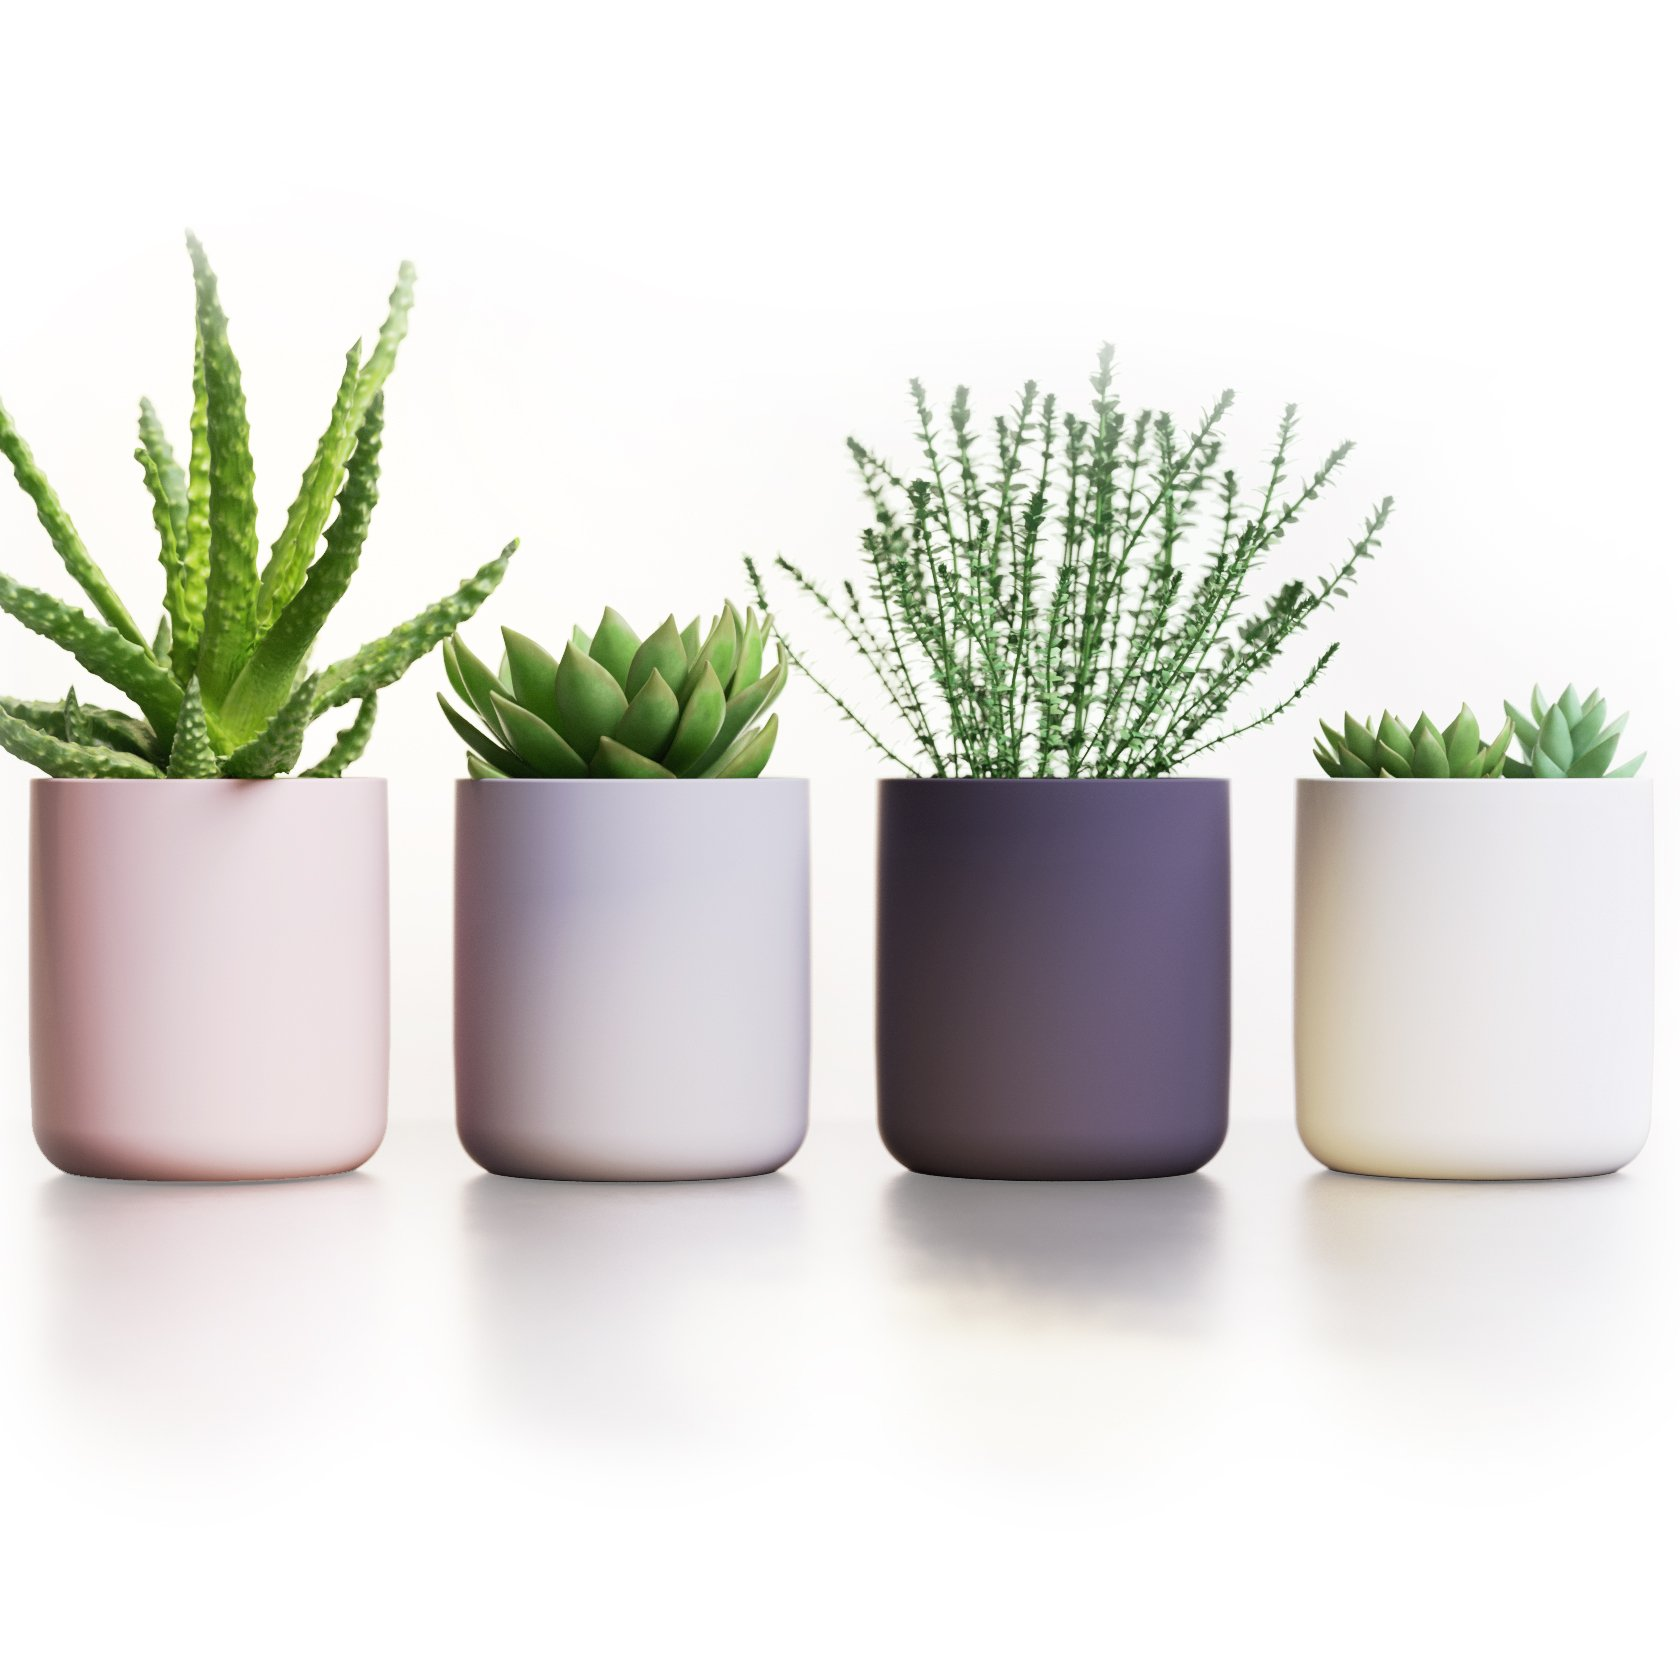 "Succulent Pots Ceramic Planters Set of 4 | Cactus Flower Plant Pots | Modern Design 3.7"" high Containers in White Gray Pink & Black by Ovillow by Ovillow"